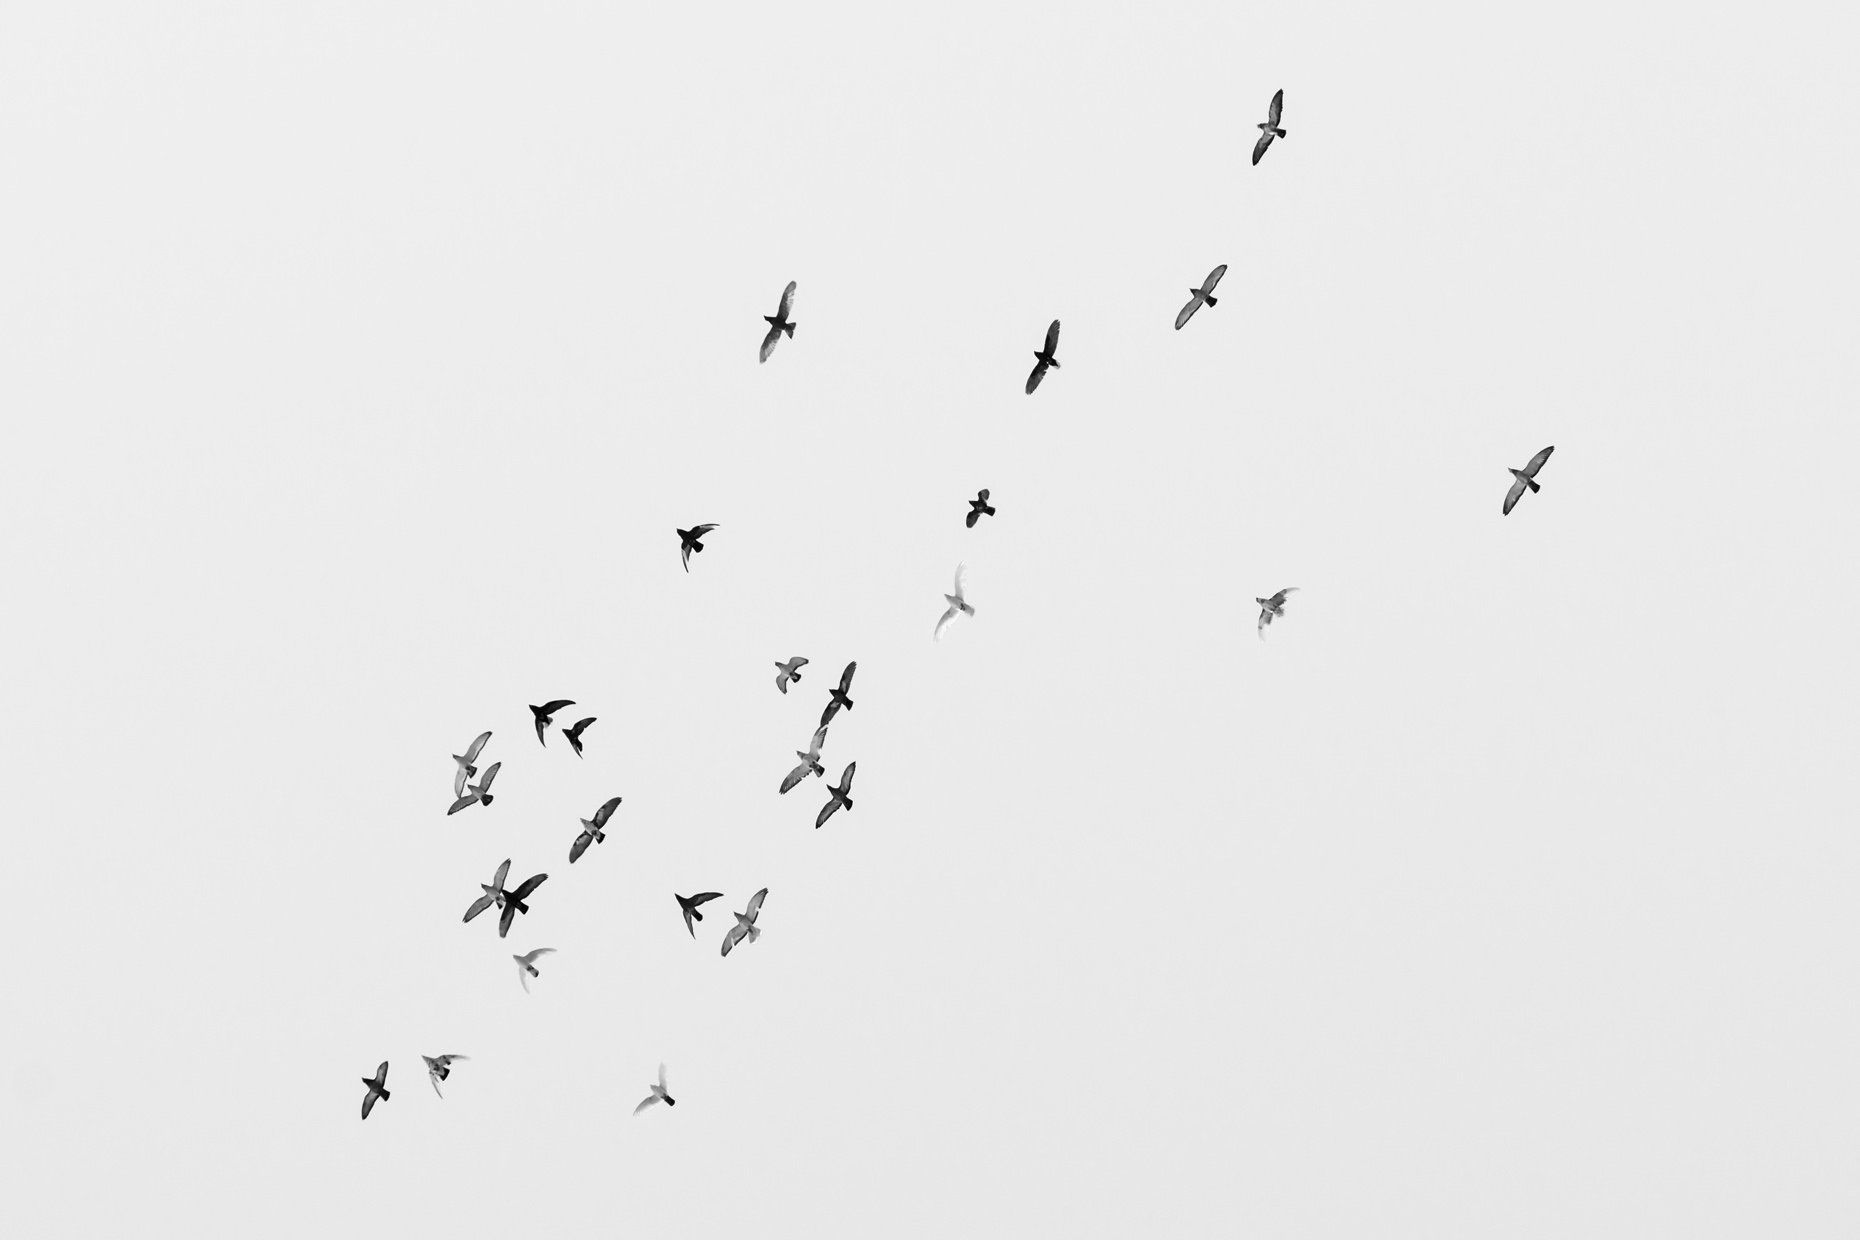 An image showing a group of feral pigeons in flight, taken by George Burke in Tripoli, Lebanon.